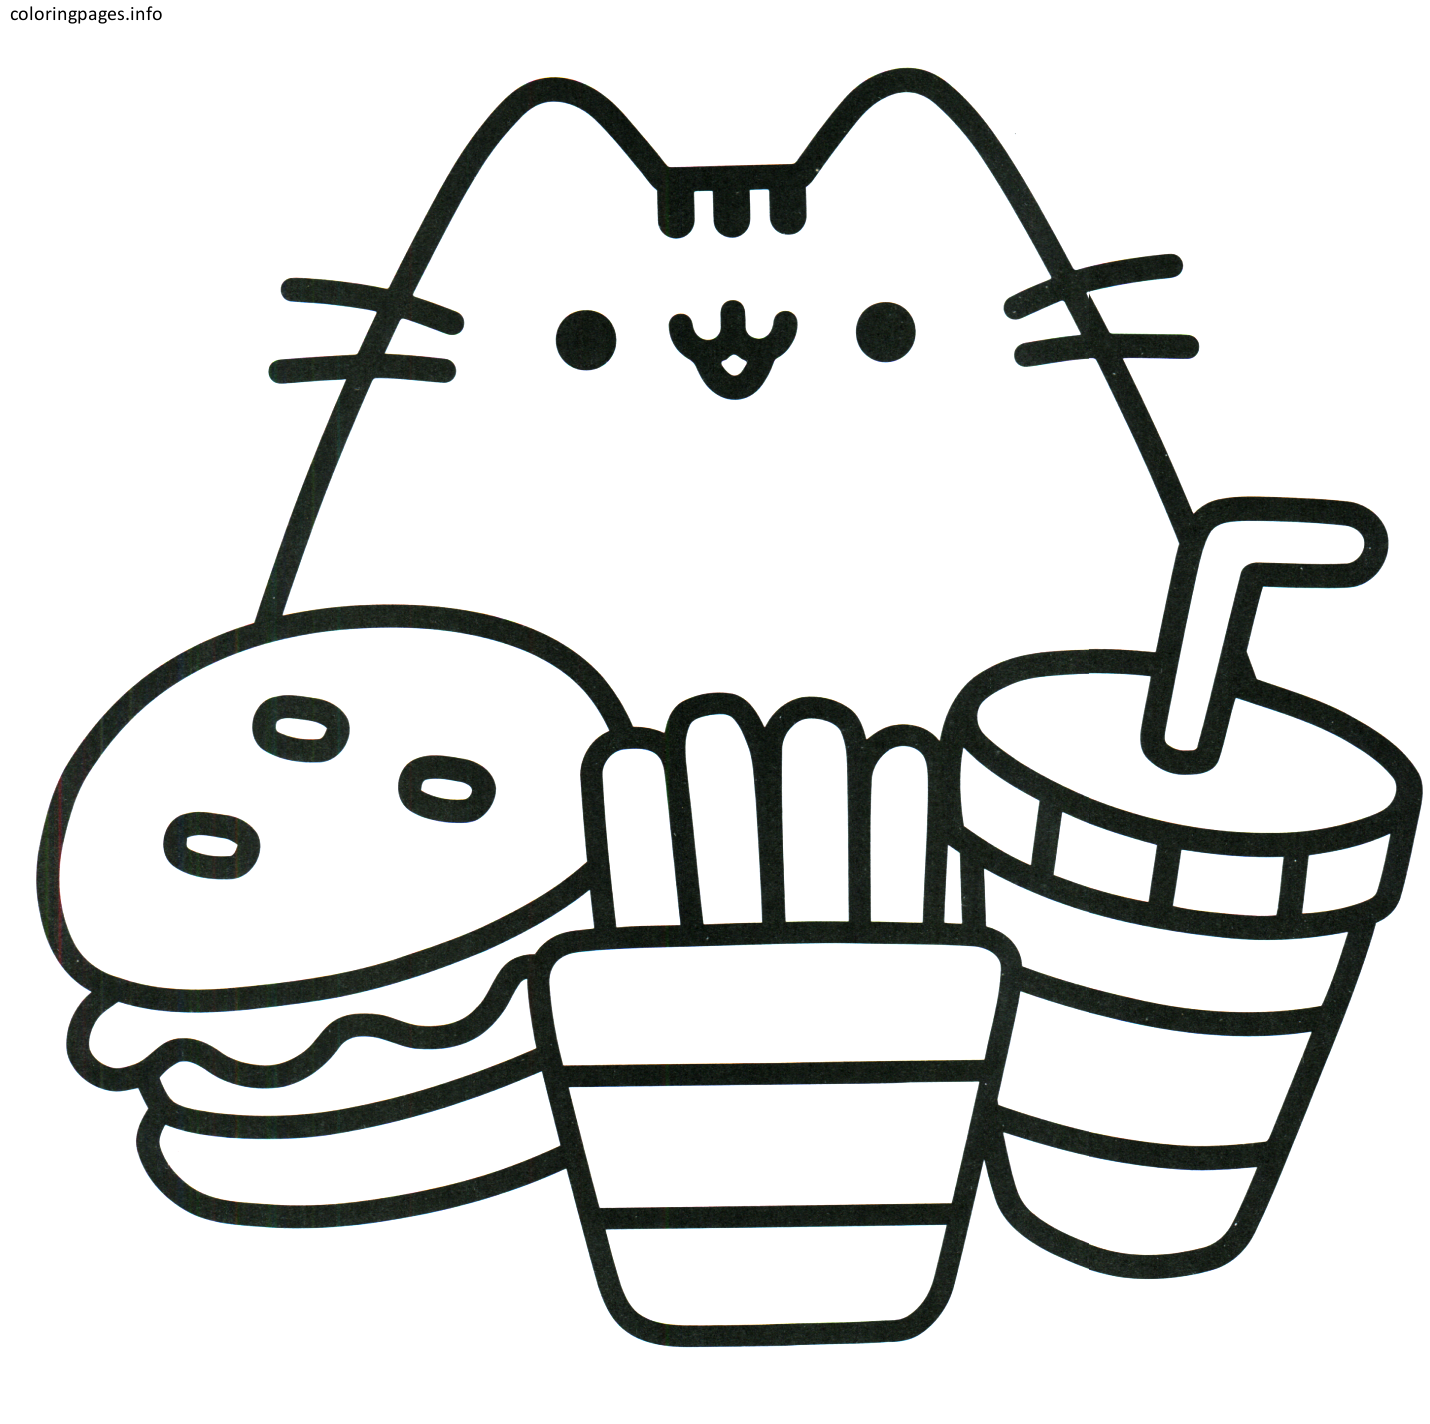 Kawaii Pusheen Cat Coloring Pages Pusheen Coloring Pages